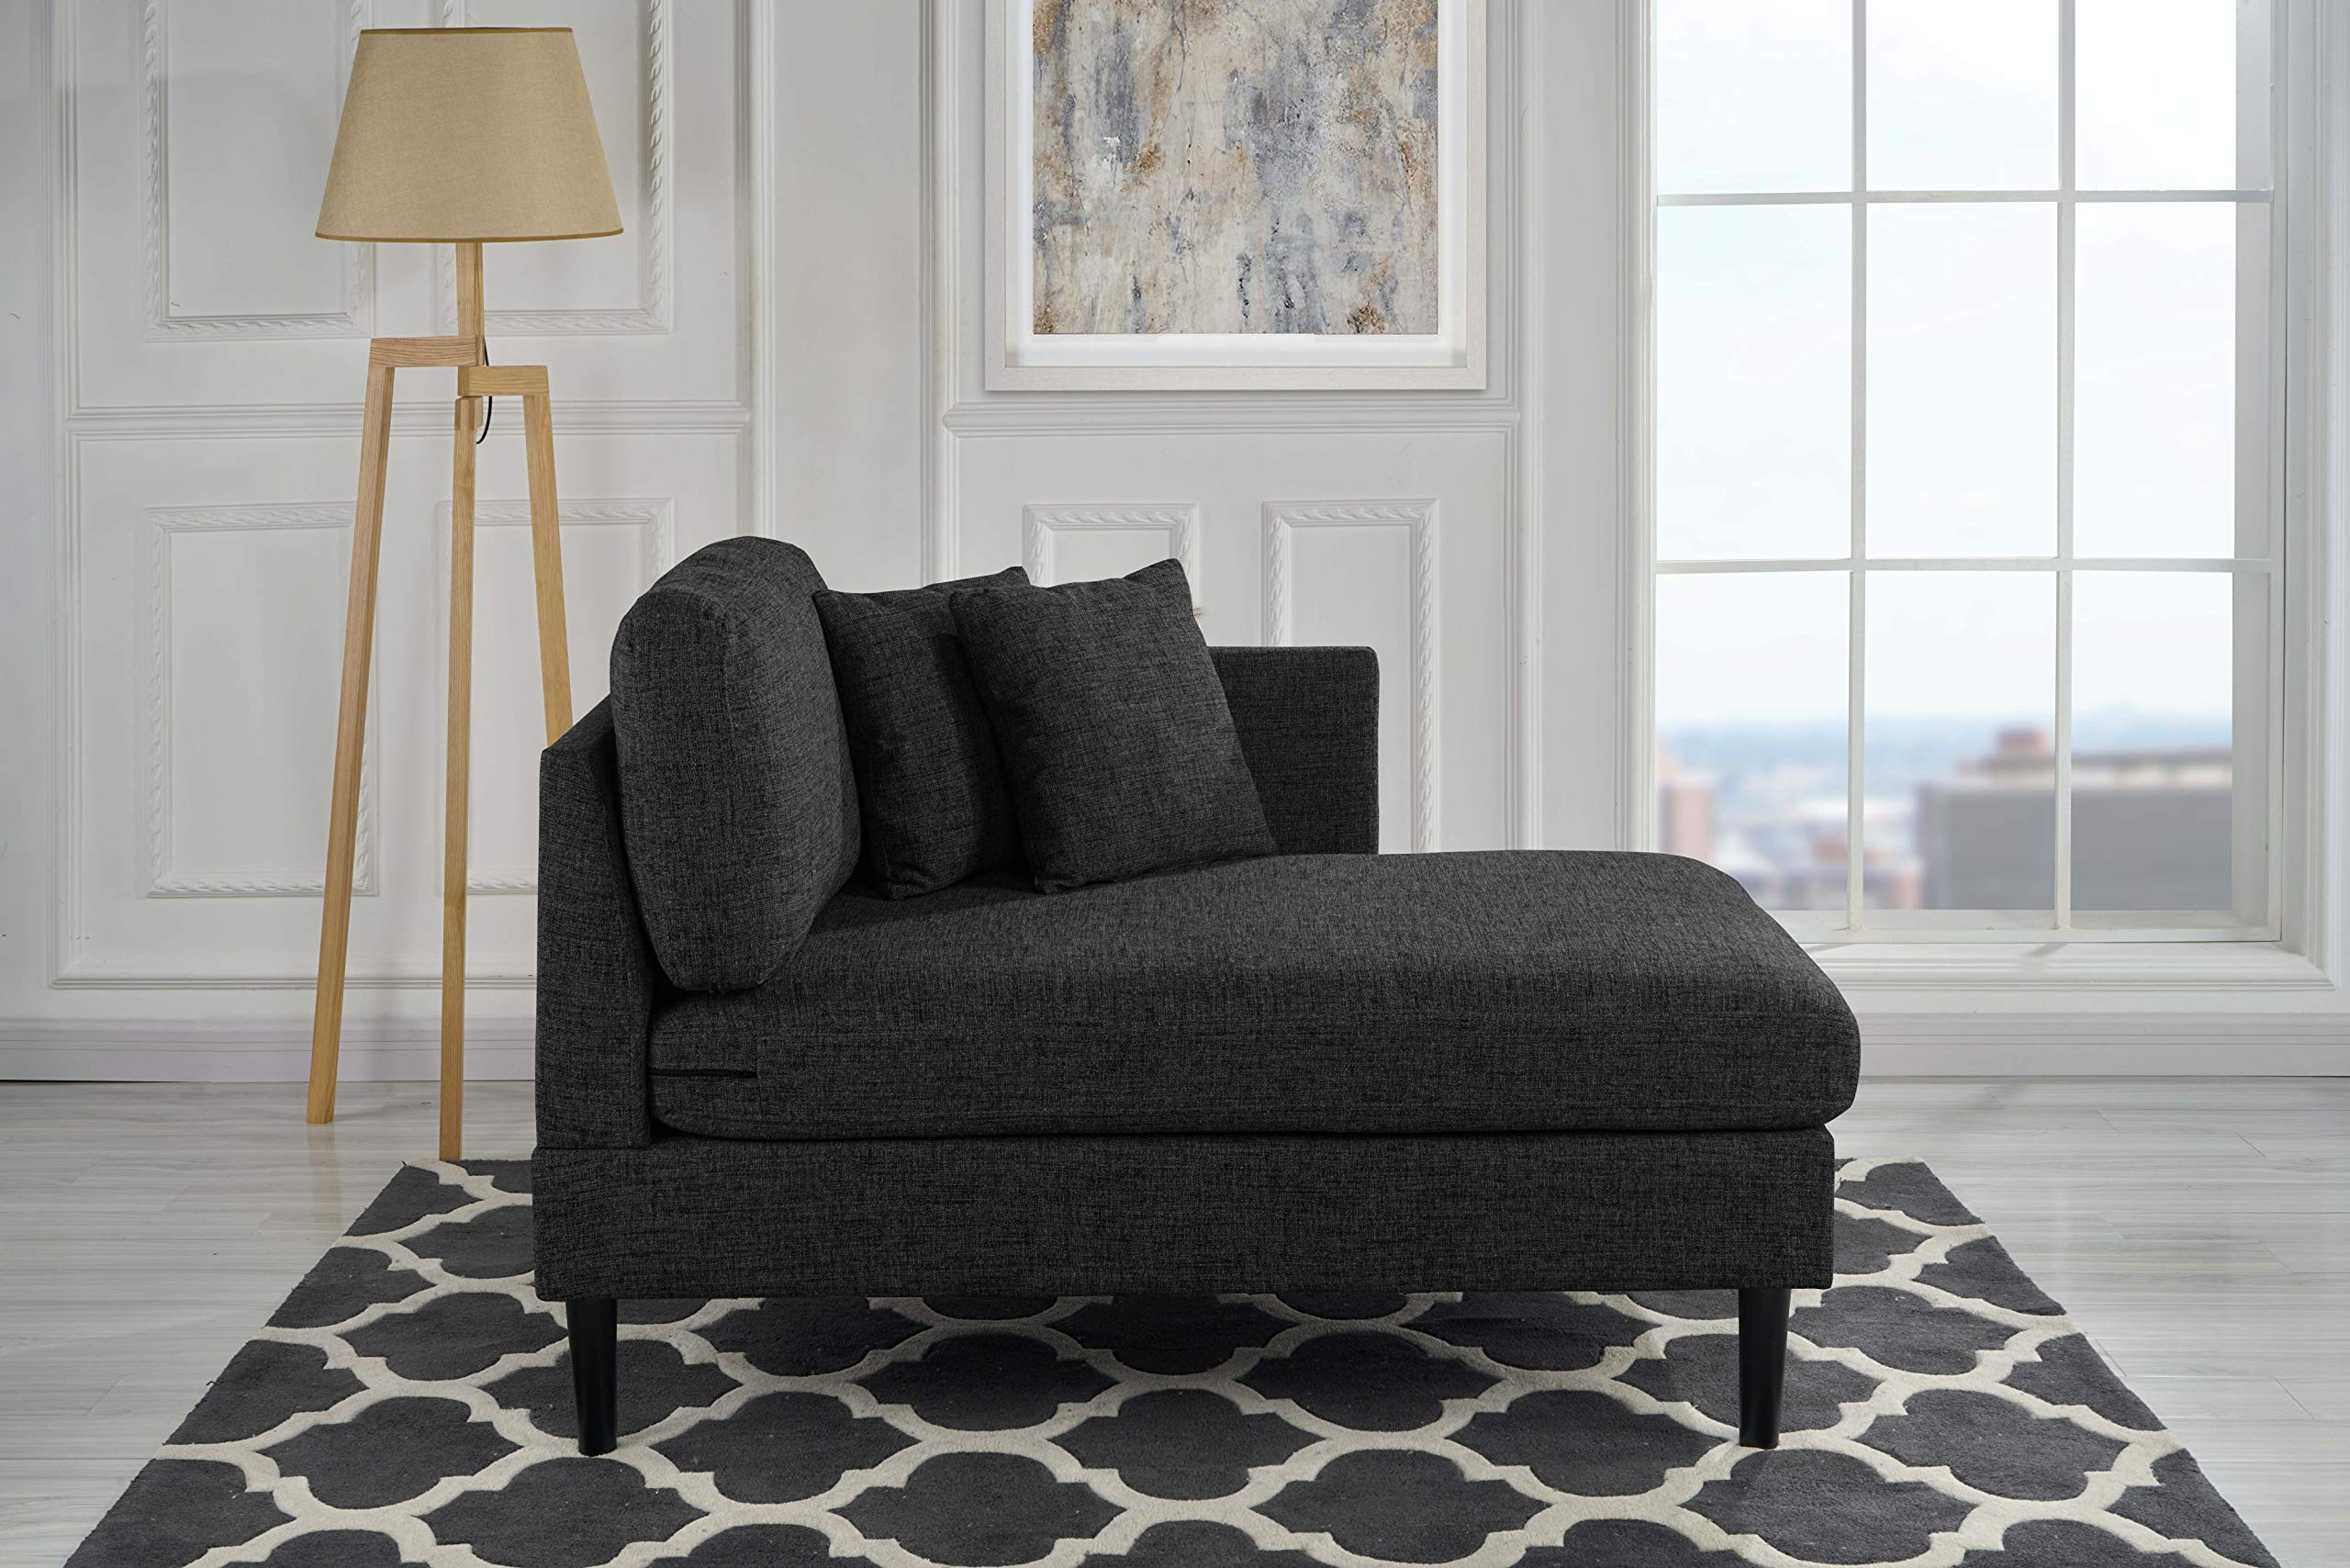 Chaise Lounge Indoor Chair Stitched Linen Fabric (with 2 Accent Pillows), Modern Mid Century Plush Chaise Lounger for Office | Living Room or Small Space Home Furniture, Jet Black by Casa Andrea Milano